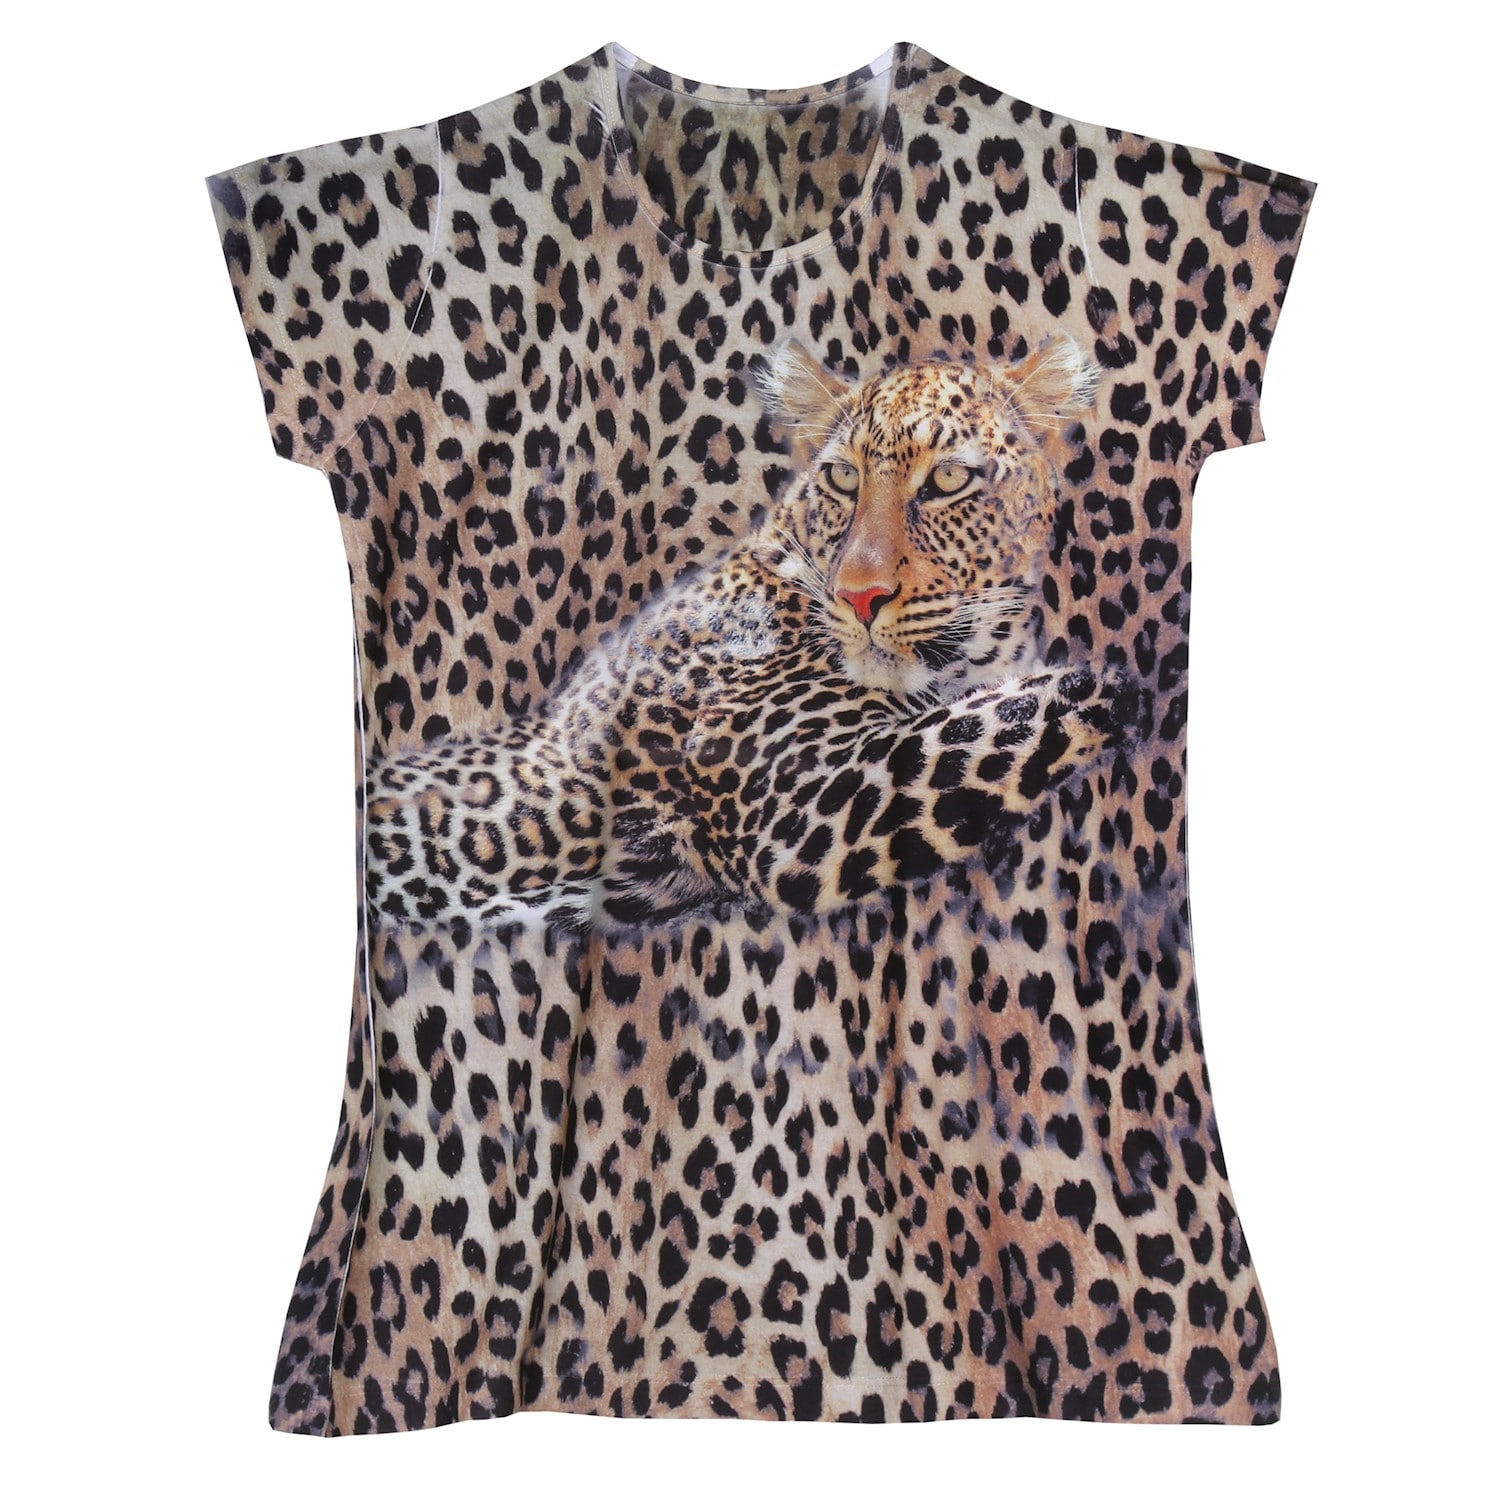 0006043beed3 Details about What On Earth Women's Leopard T-Shirt Top - Animal Print Tee  with Cap Sleeve